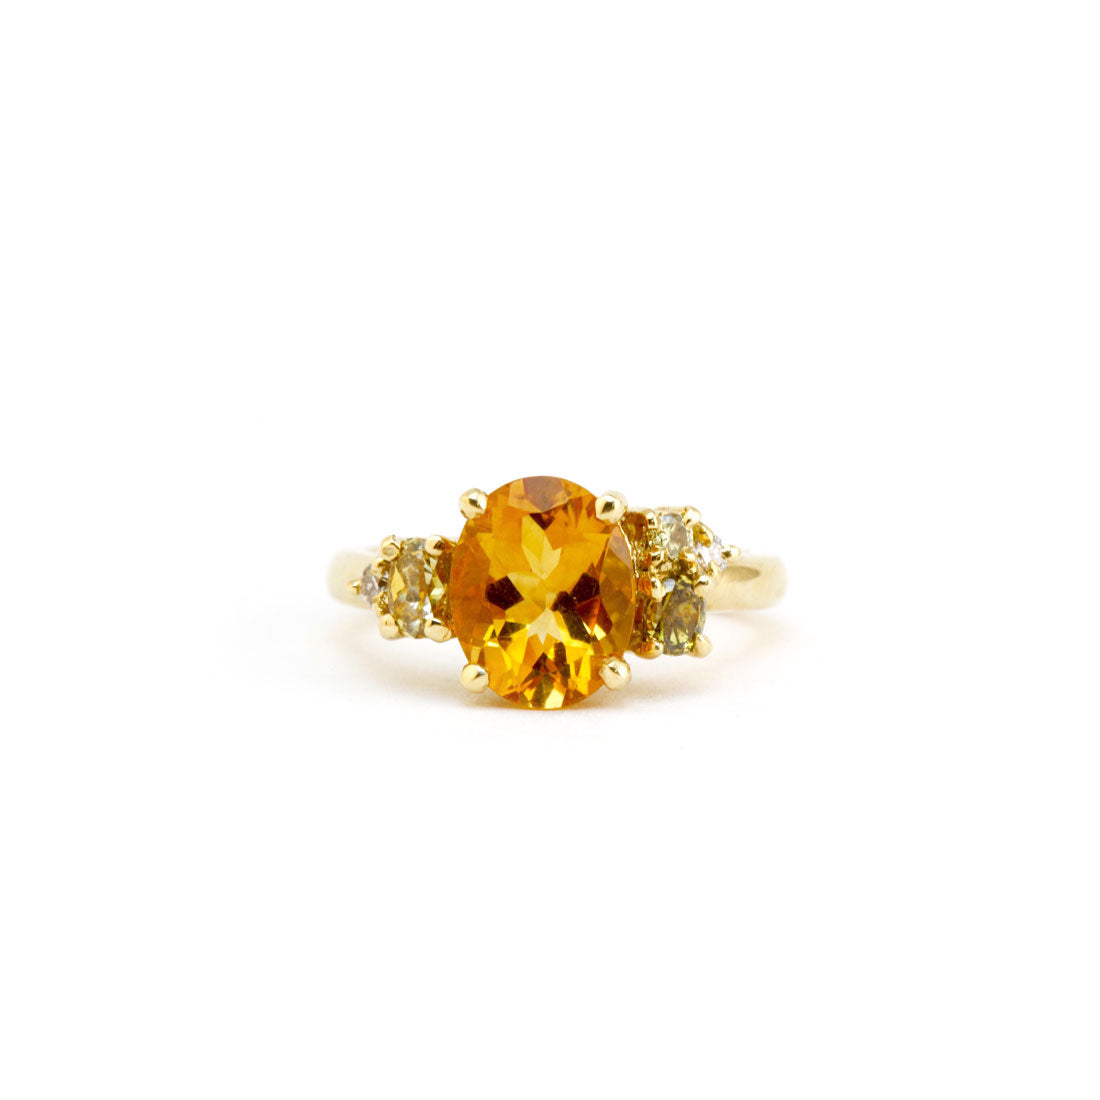 Citrine cluster engagement ring in 18ct yellow gold, Custom Bespoke Handmade.